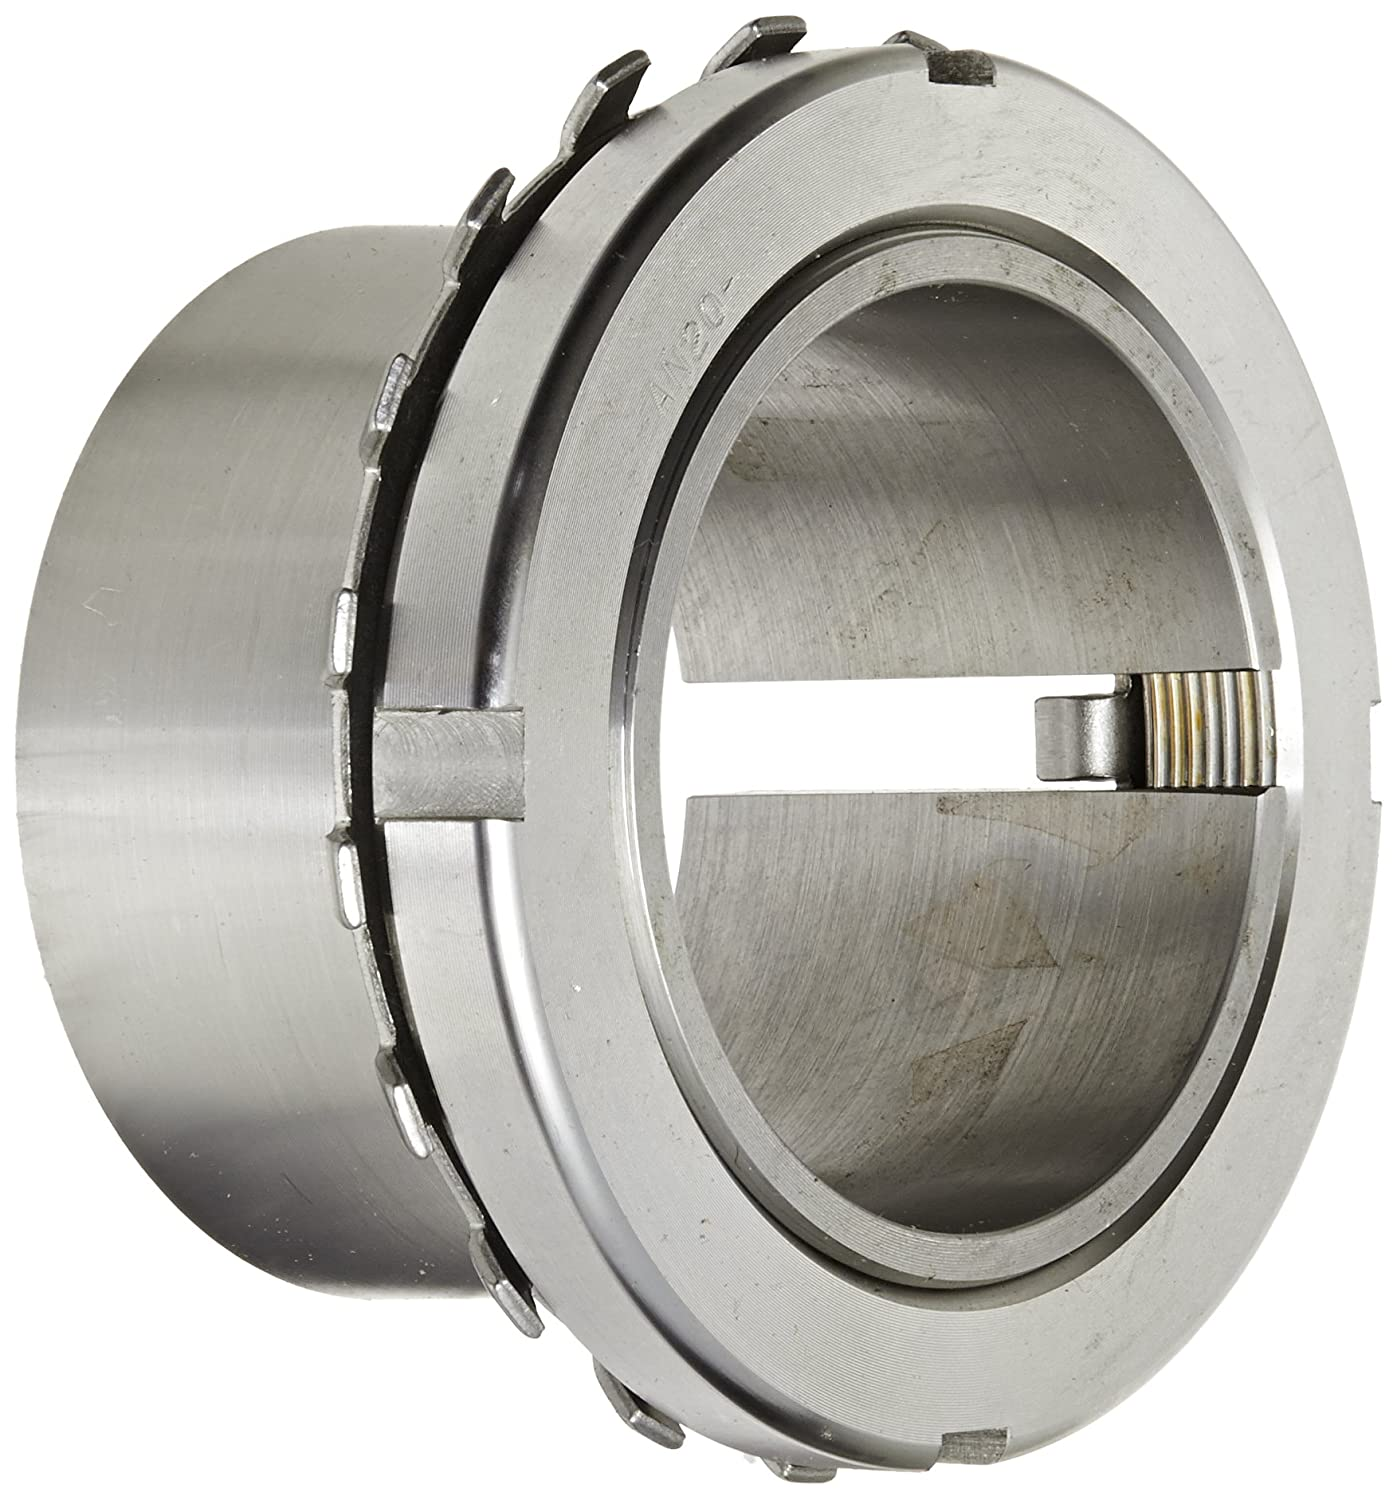 15//16 Shaft Size SKF SNW 6X15//16 Adapter Sleeve Used With 1200K and 1300K Series Ball Bearings 22200K Series Roller Bearings 15//16 Shaft Size Inch